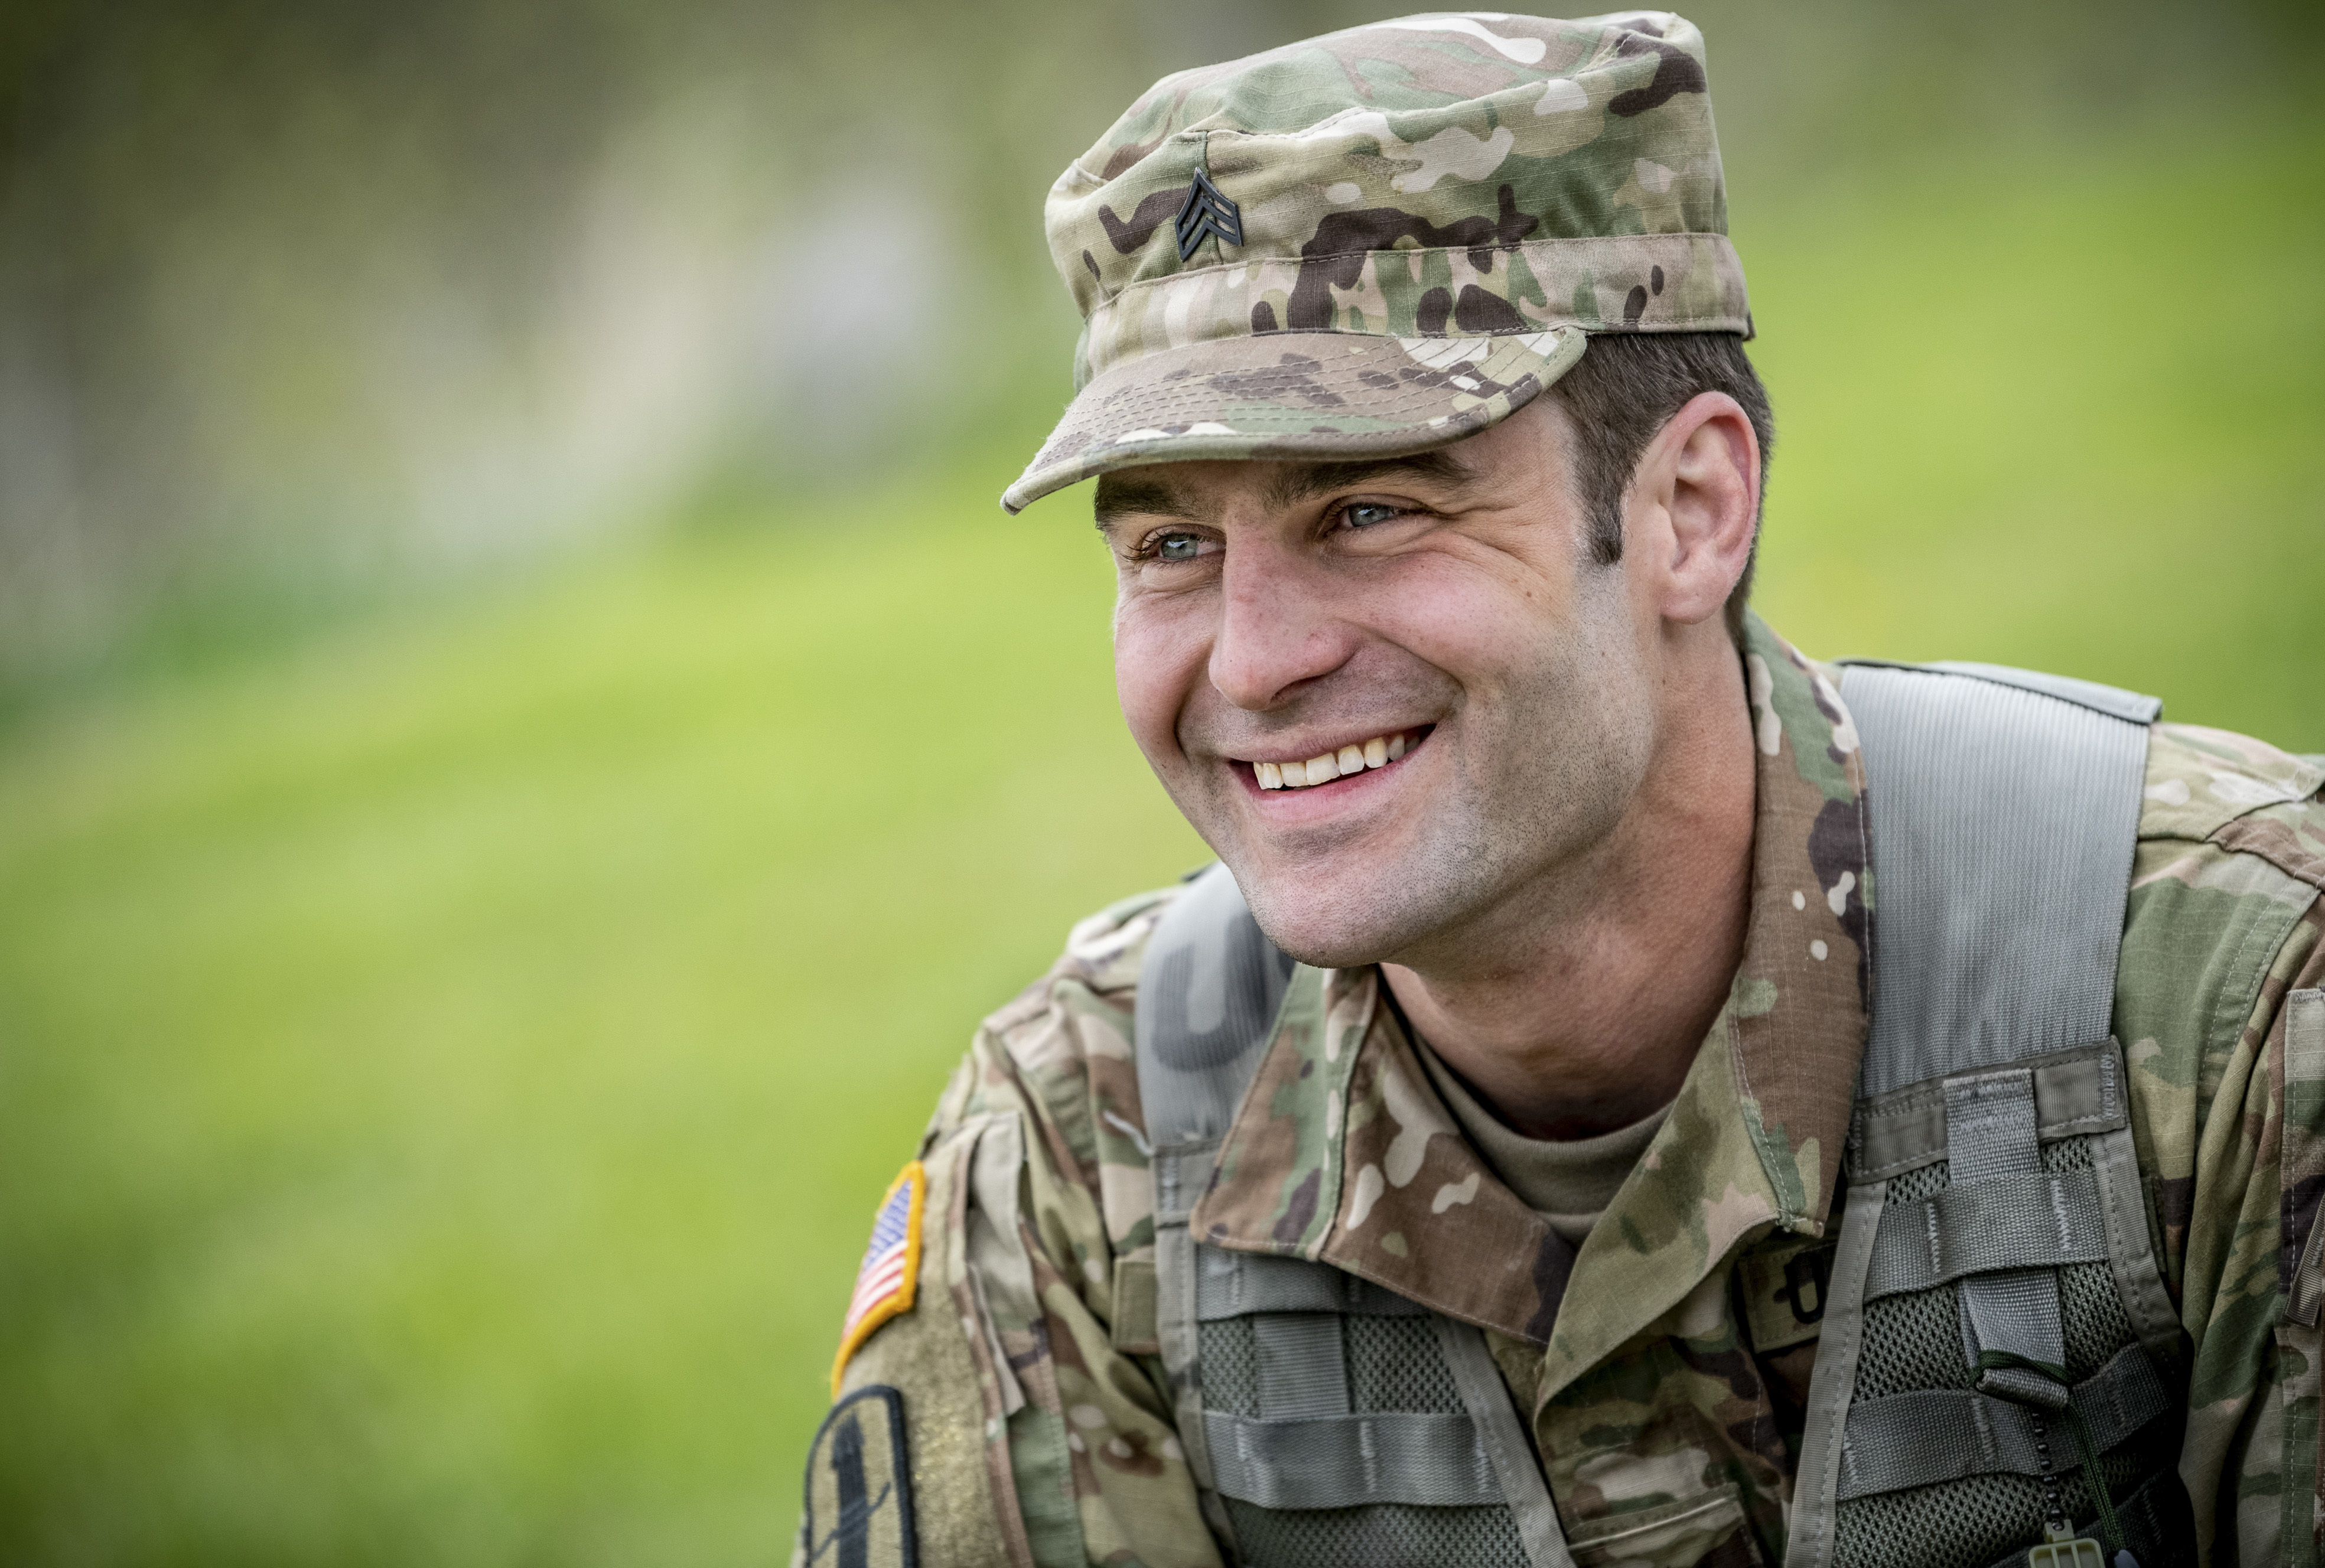 Army national Guard member smiling